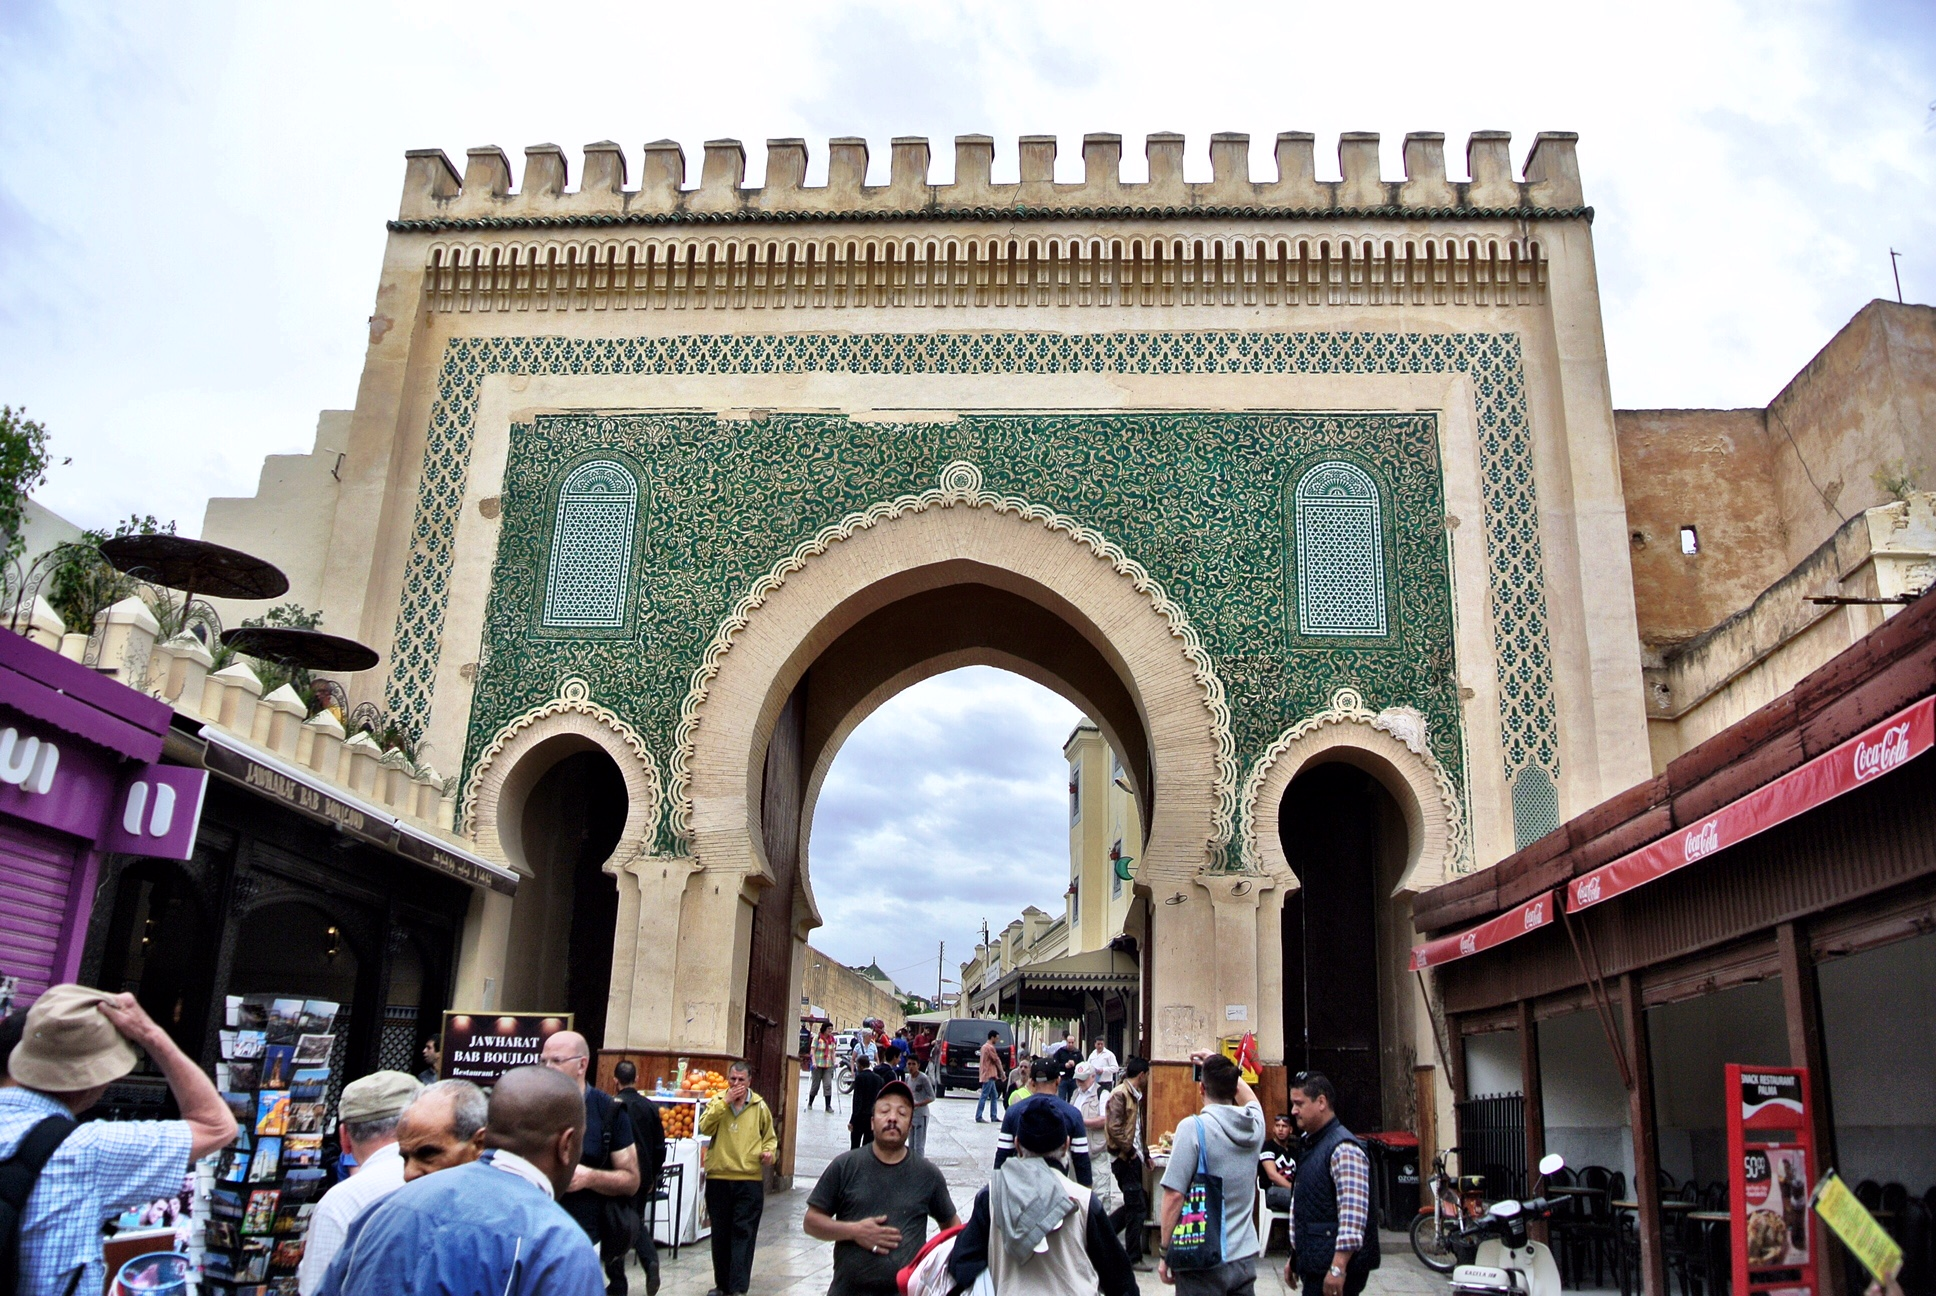 One side of the so-called Blue Gate is actually green, to represent Islam